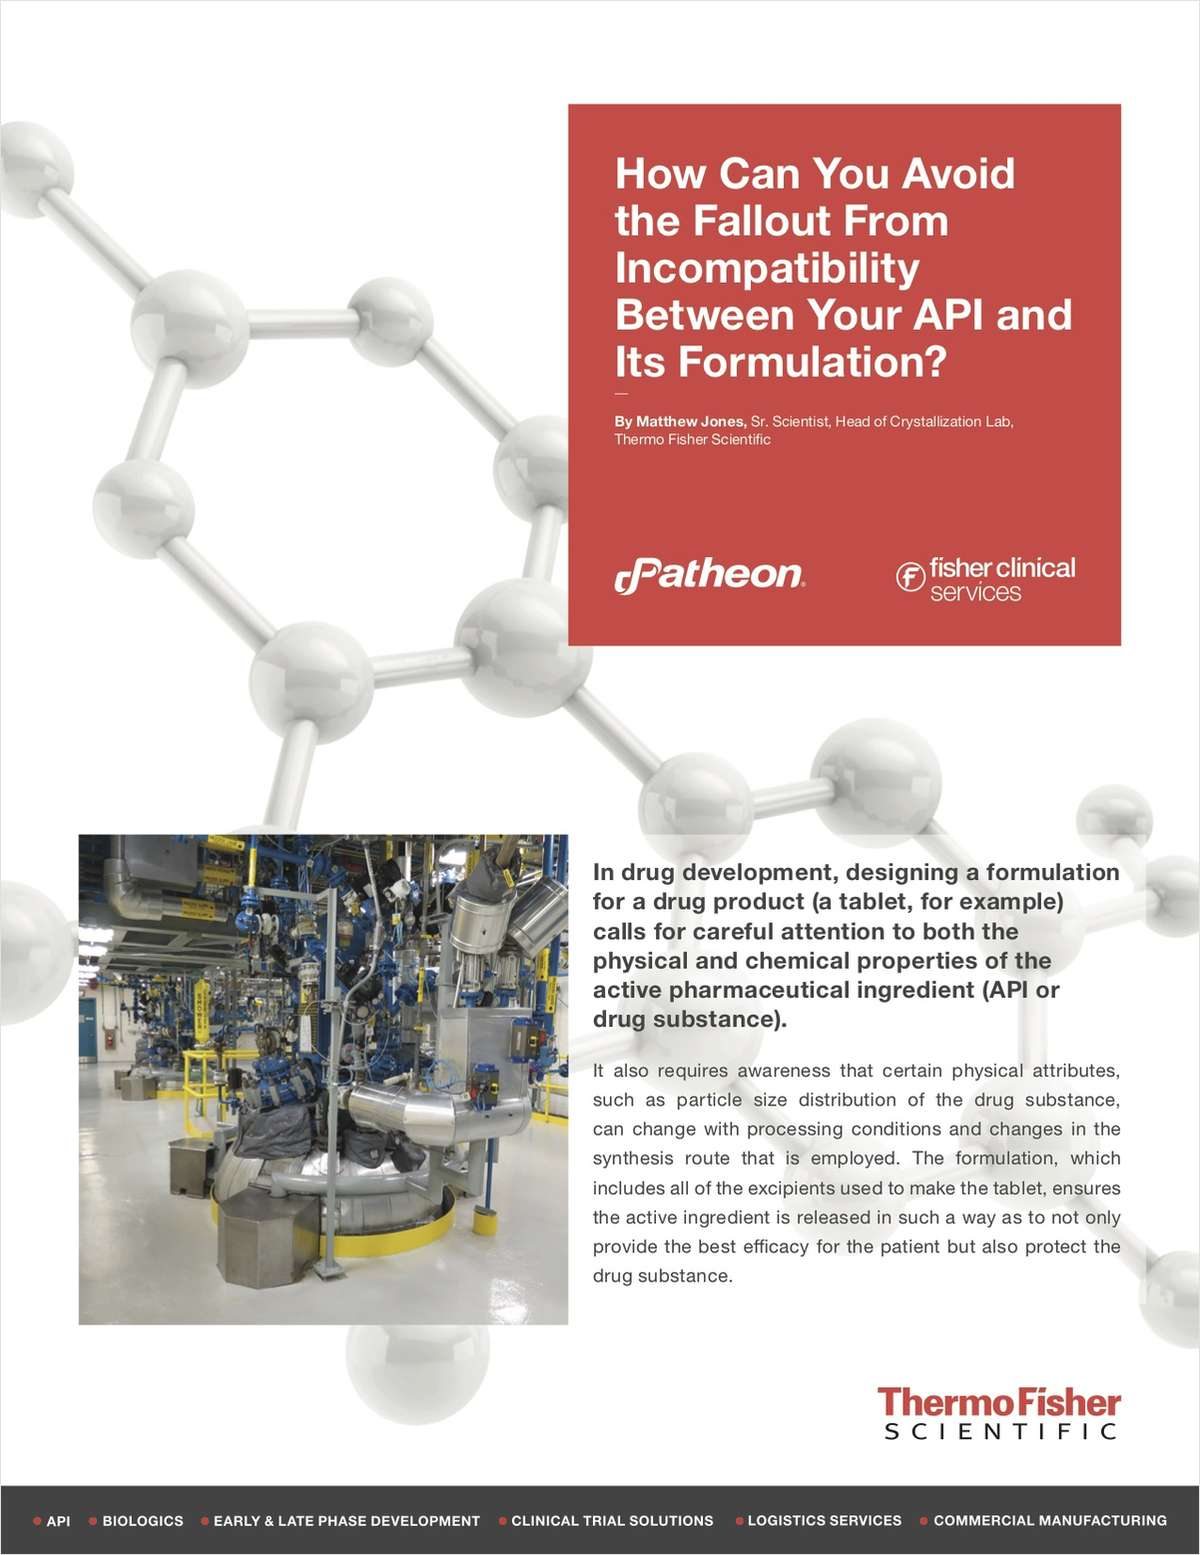 Avoid Fallout From Incompatibility Between Your API And Its Formulation